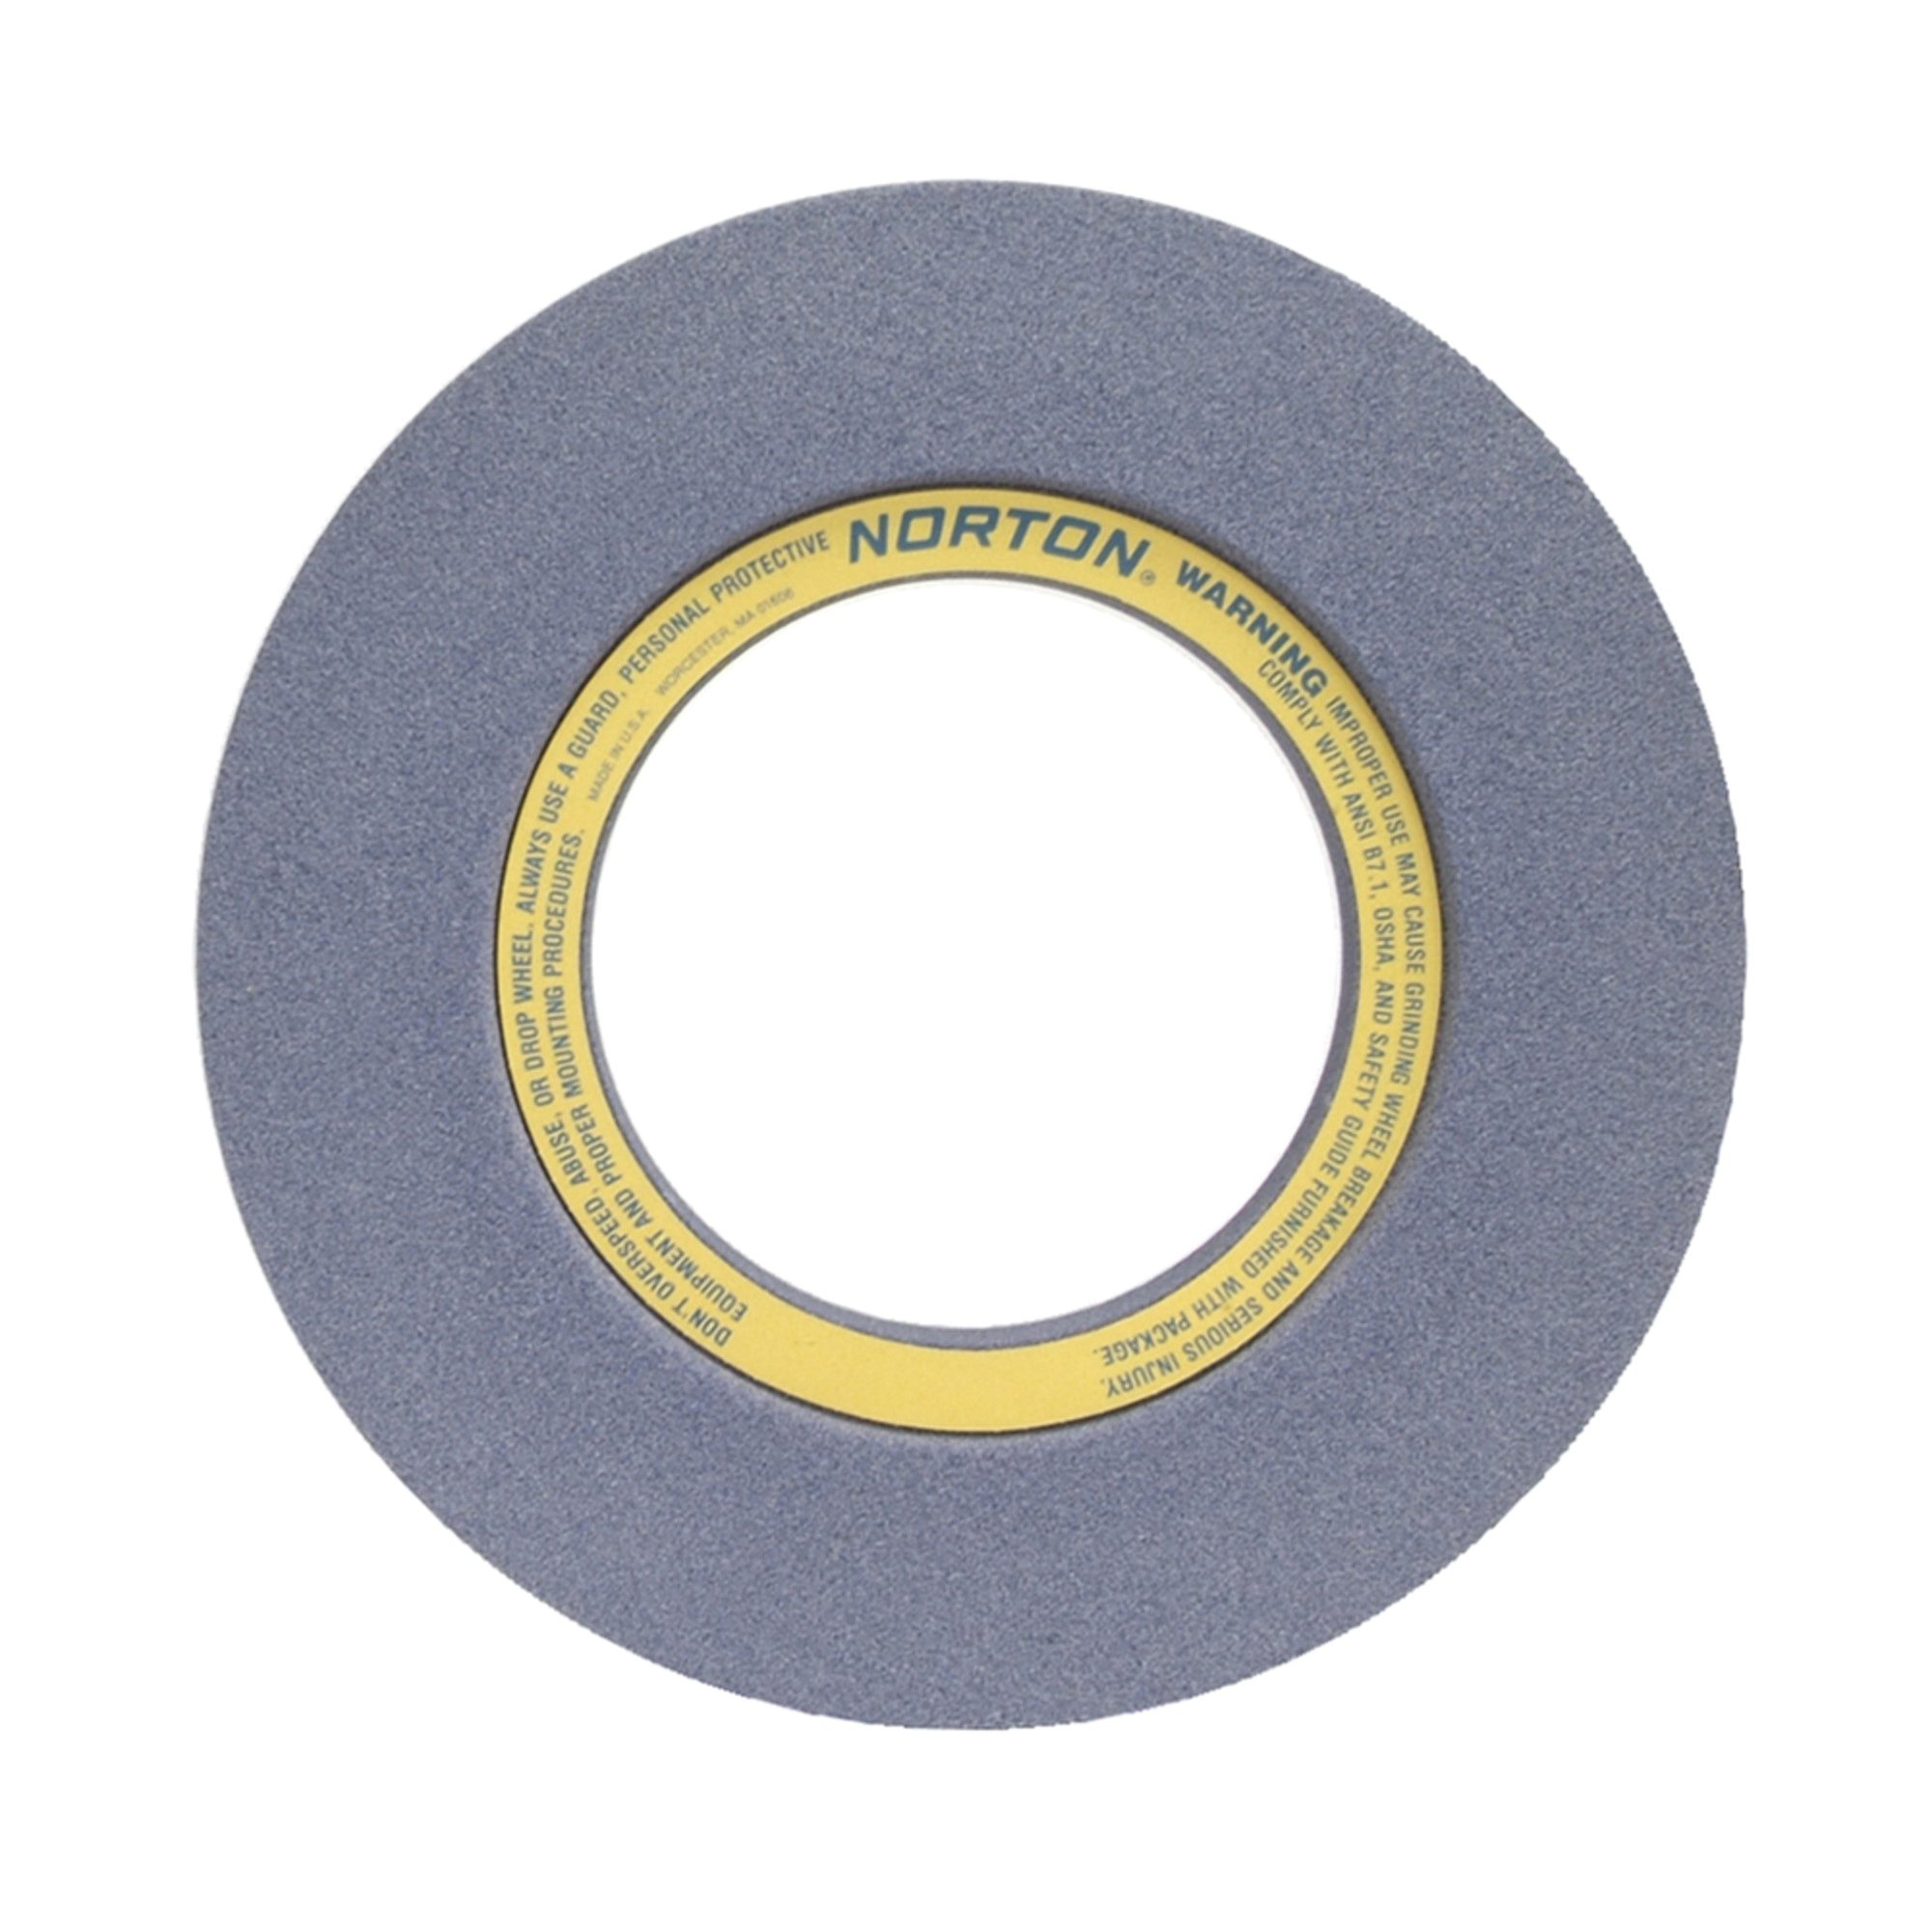 Norton® 69078665686 32A 2-Side Recessed Surface and Cylindrical Grinding Wheel, 20 in Dia x 3 in THK, 8 in Center Hole, 46 Grit, Aluminum Oxide Abrasive